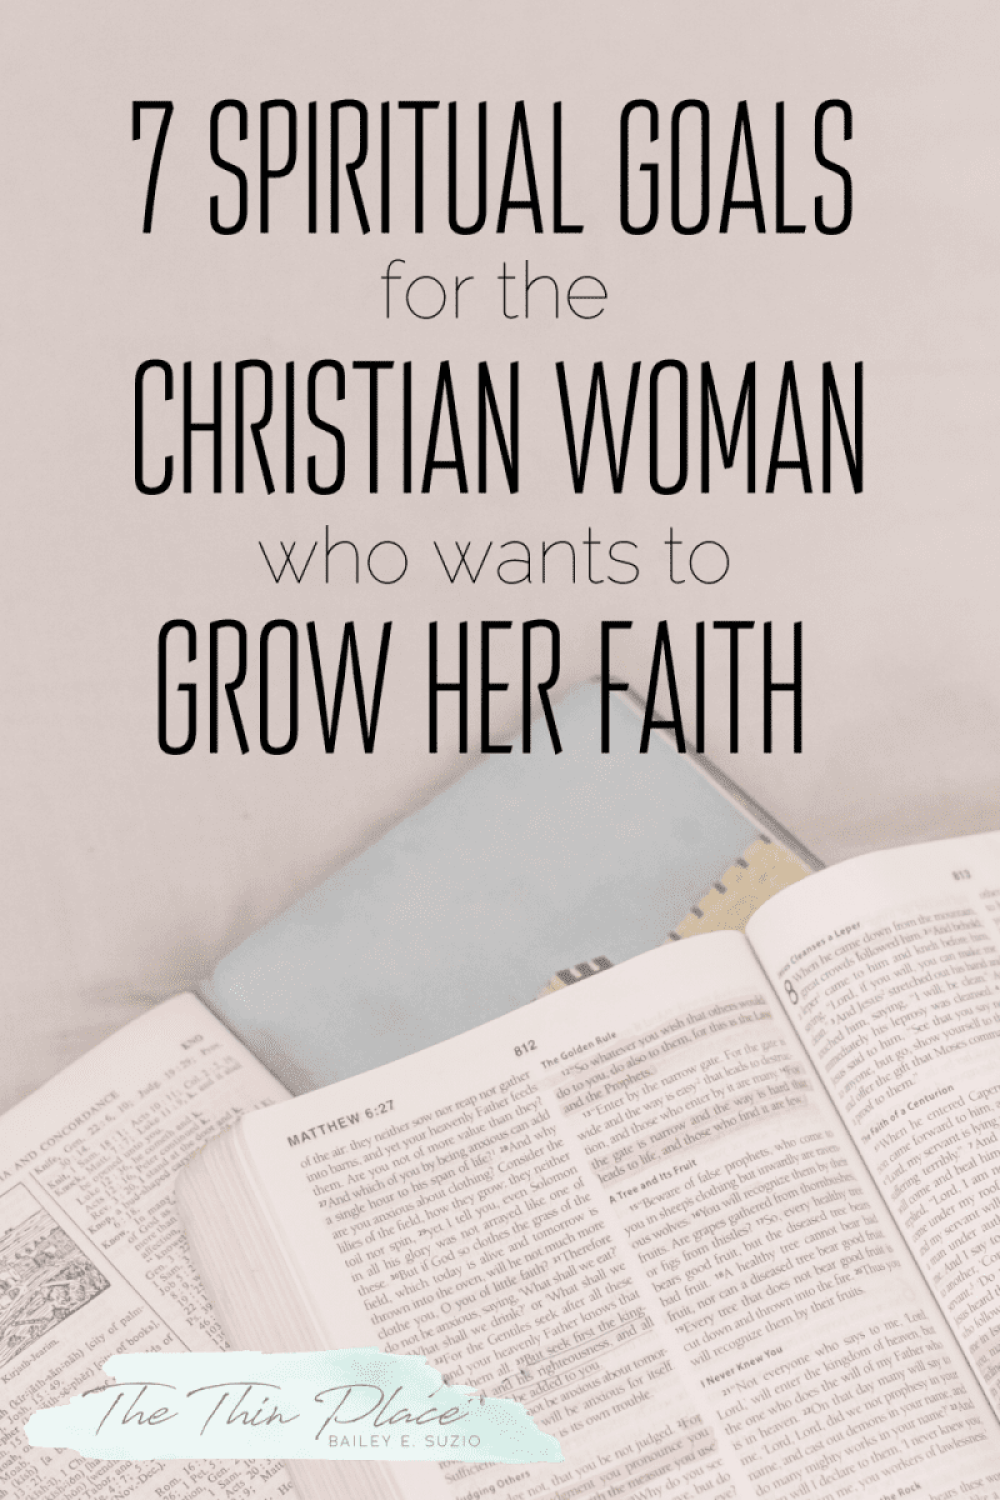 7 Spiritual goals for the Christian woman who wants to grow her faith in God #christianwoman #christianwomen #spiritualgrowth #godlywoman #christianfaith #christianliving #spiritualgoals